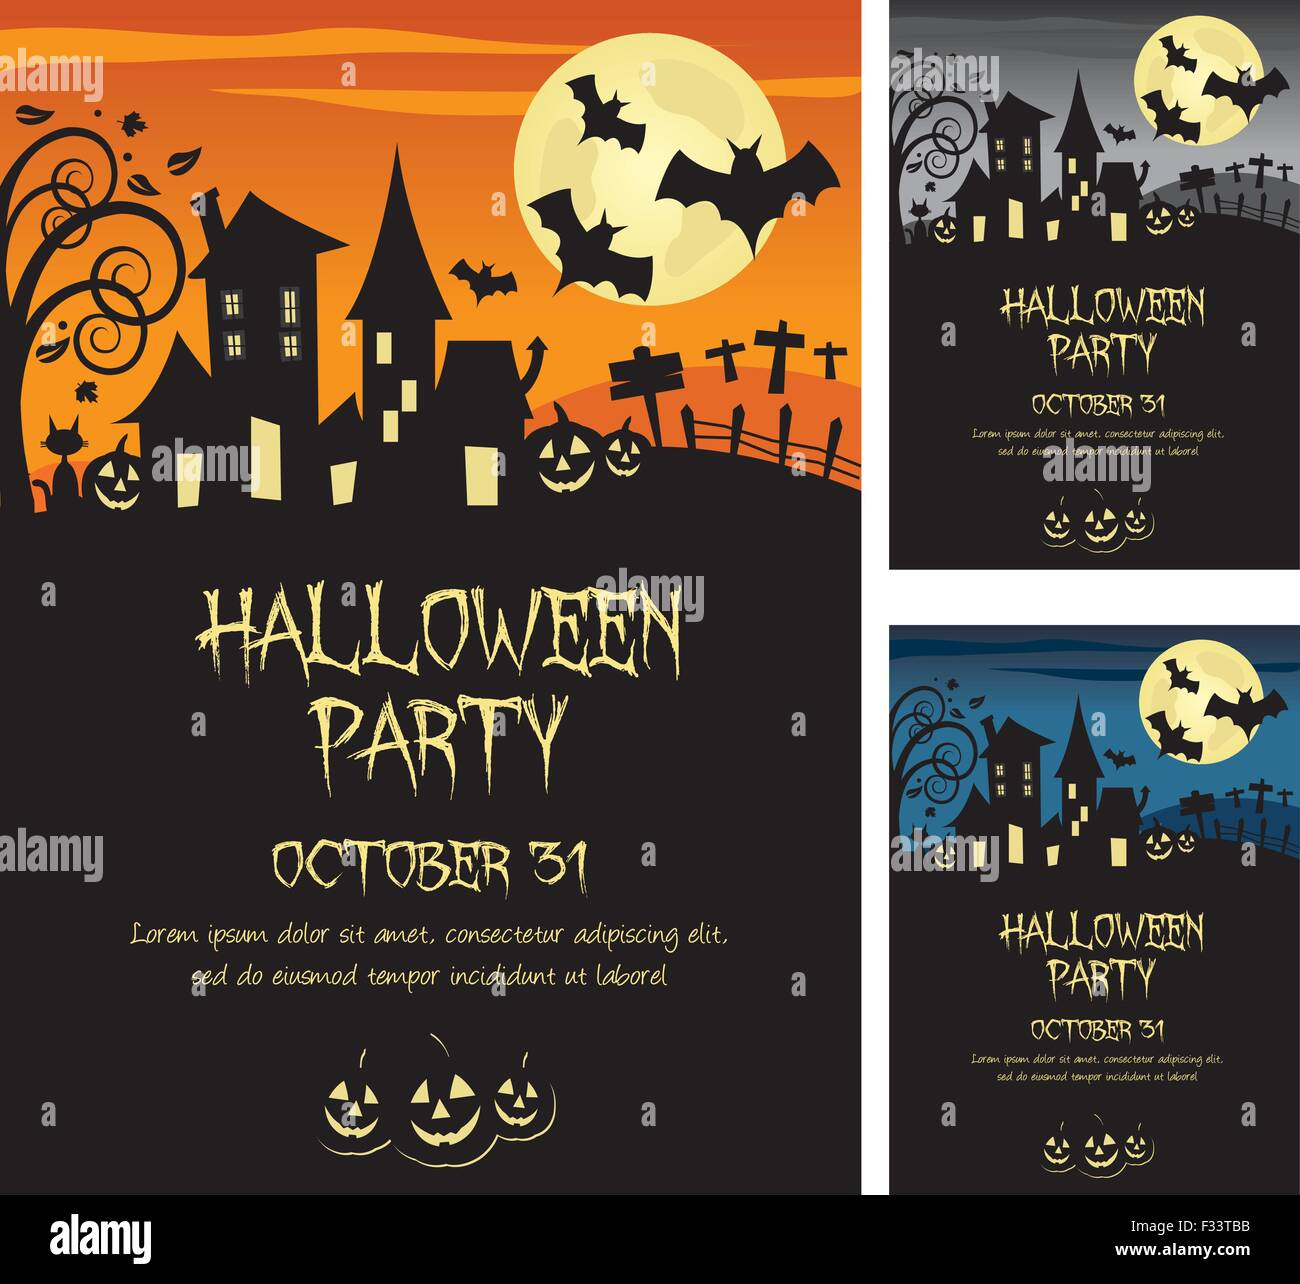 Halloween party invitation poster or card illustration design, text ...